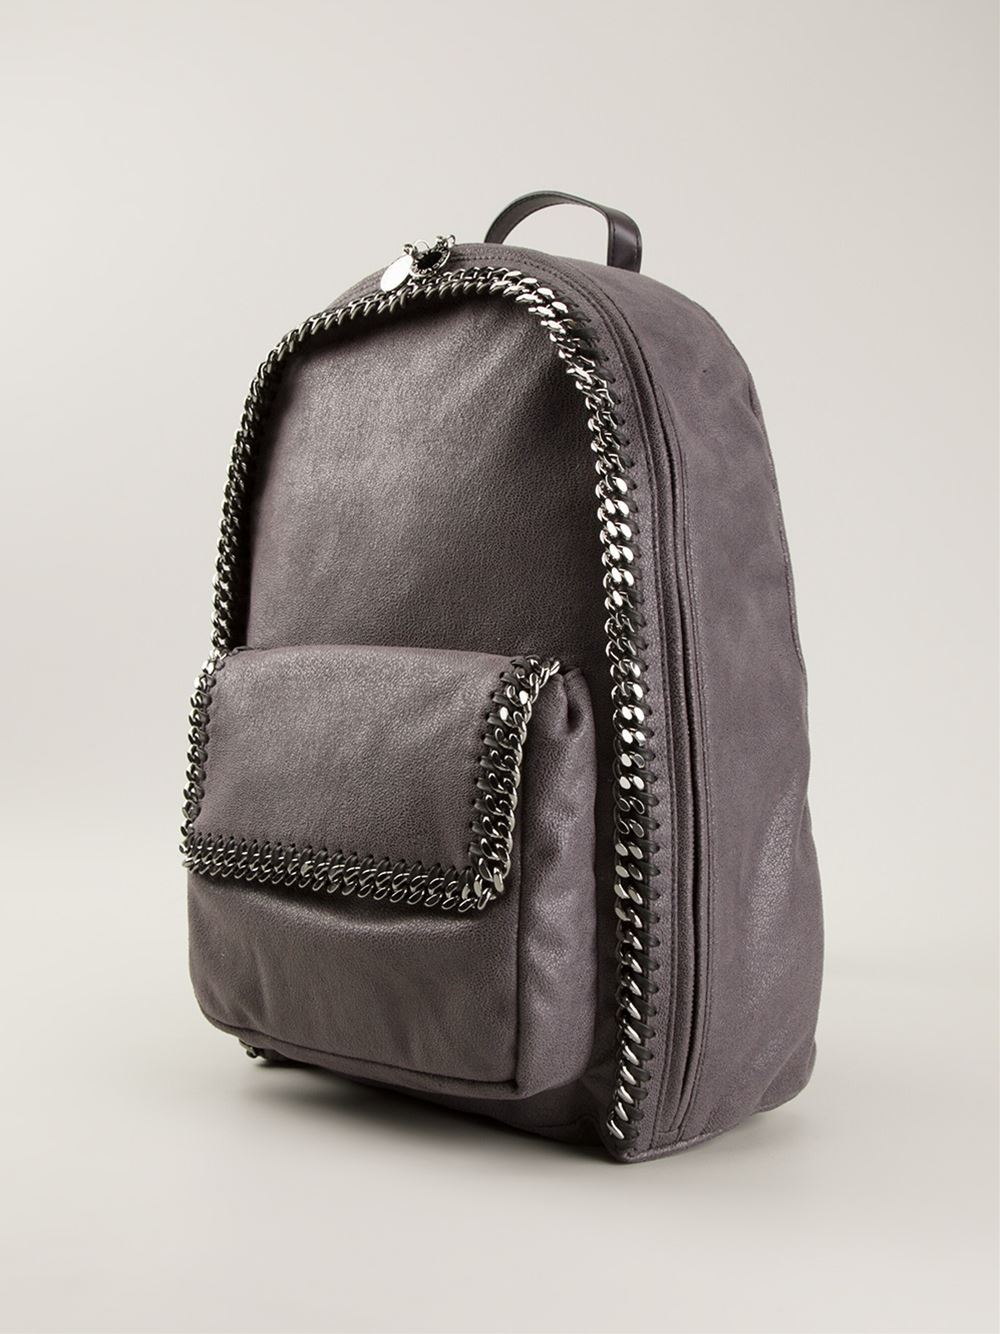 stella mccartney falabella backpack in gray lyst. Black Bedroom Furniture Sets. Home Design Ideas